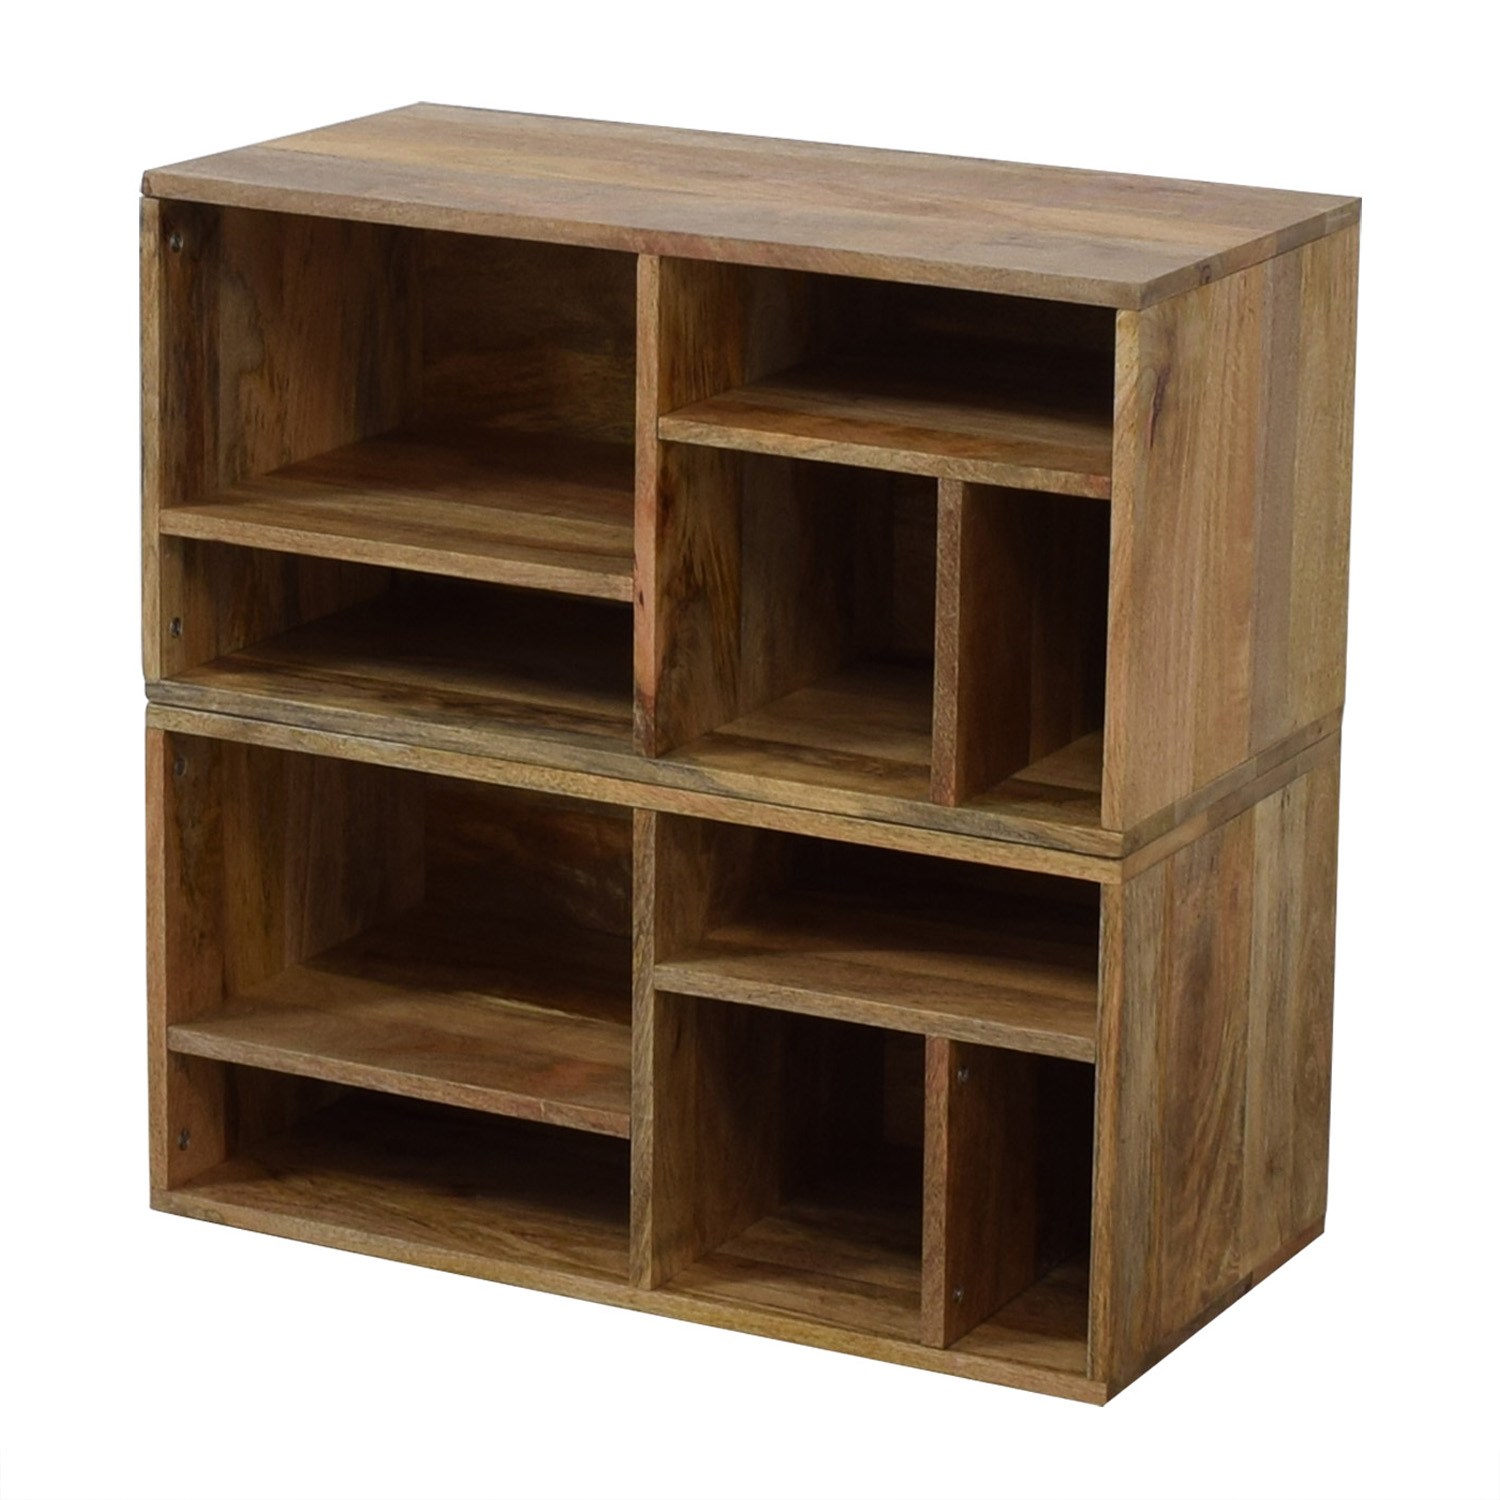 shop Urban Outfitters Urban Outfitters Raw Wood Bookshelves online